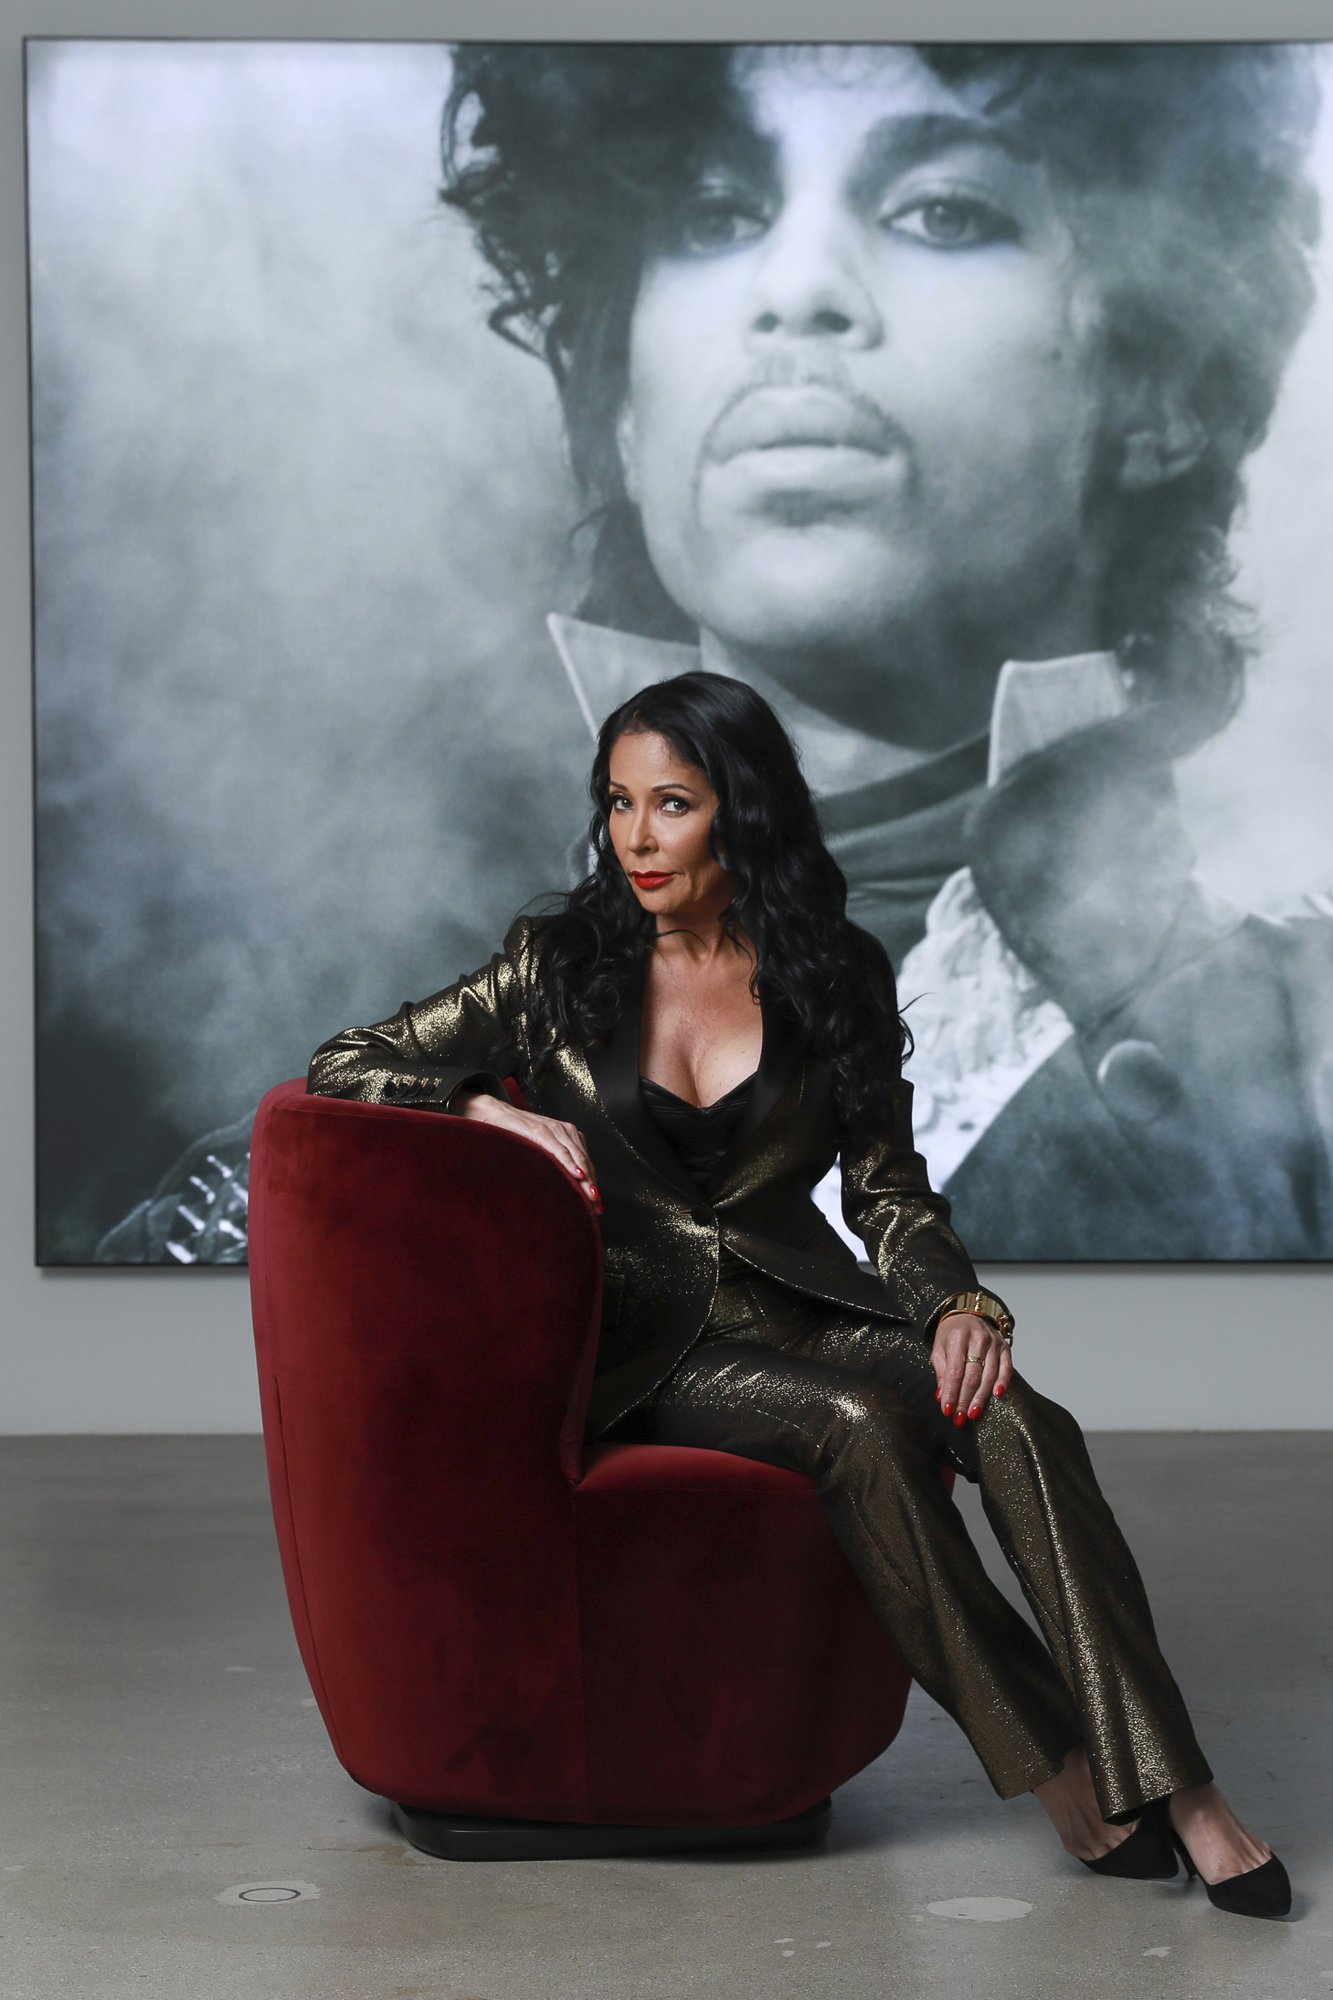 Apollonia Kotero poses for a portrait in front of a photo of Prince at Warner Music Group in Los Angeles on Friday, May 31, 2019. Kotero, who recorded Prince's